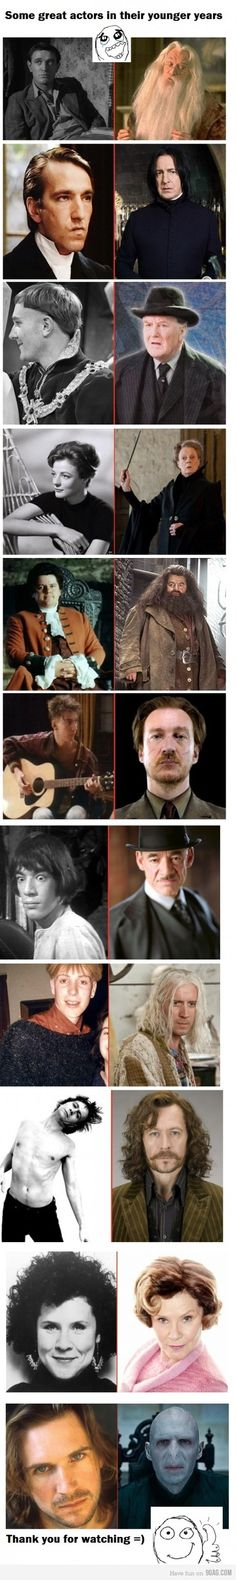 Great actors in their younger years